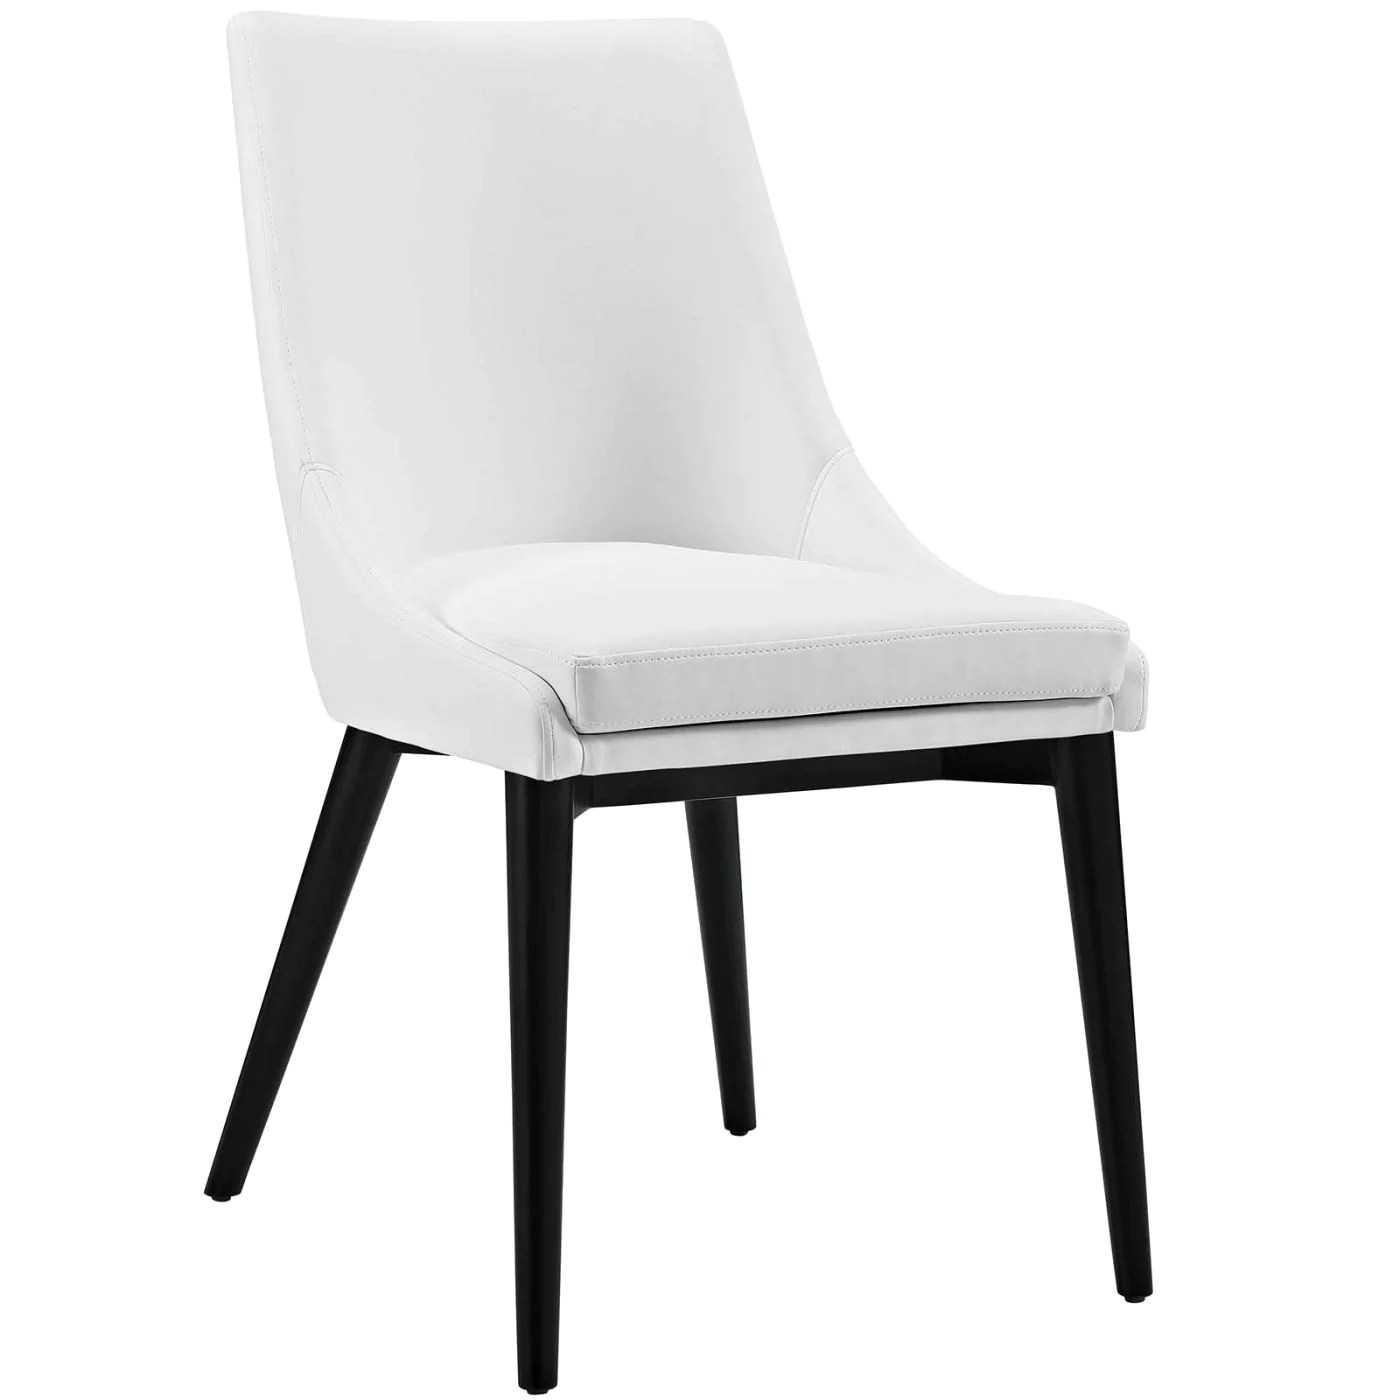 faux leather dining chairs wicker chair aldi modway on sale eei 2226 whi viscount white